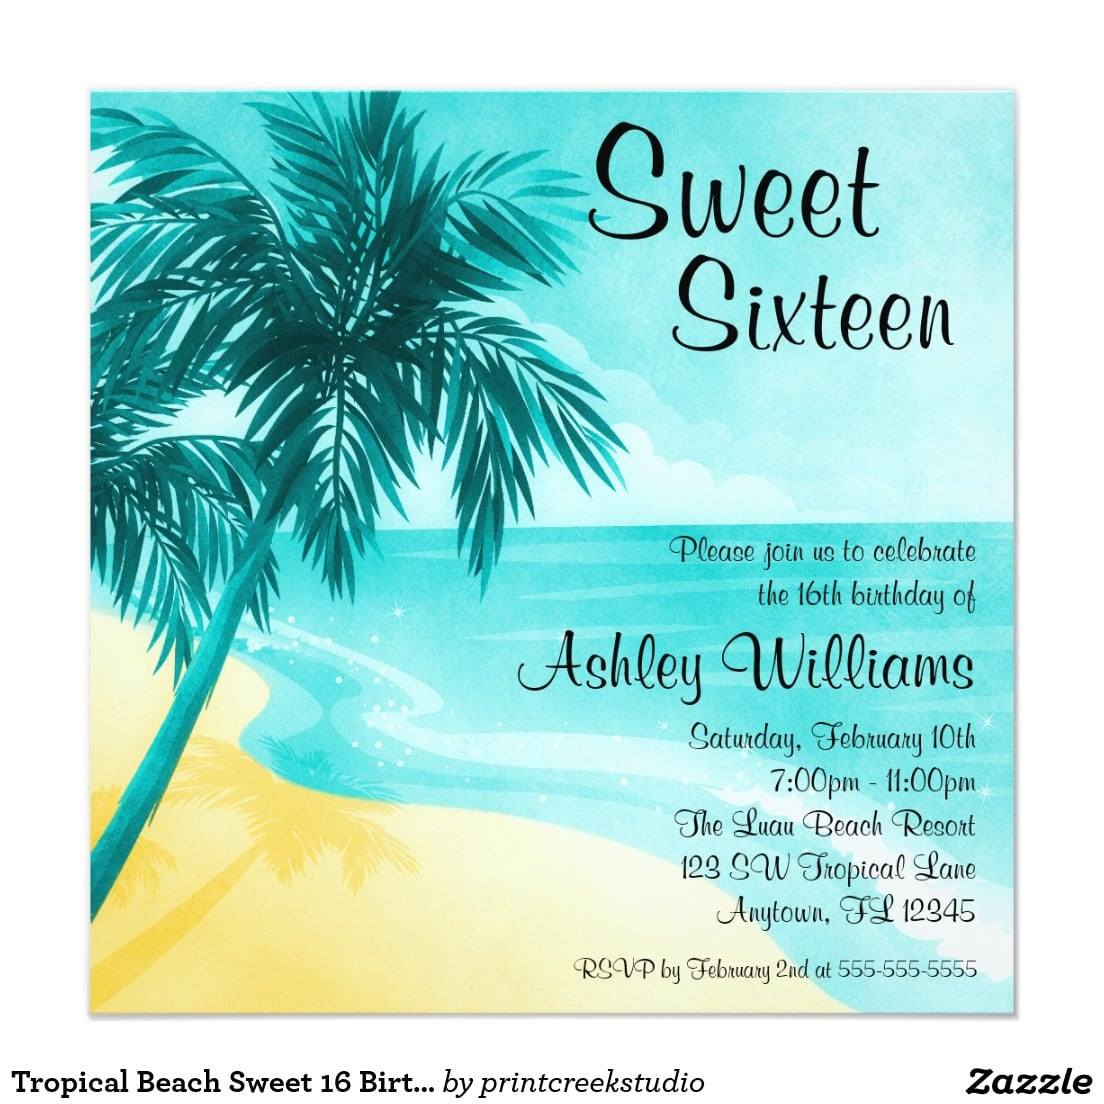 Tropical Beach Sweet 16 Birthday Party Invitations